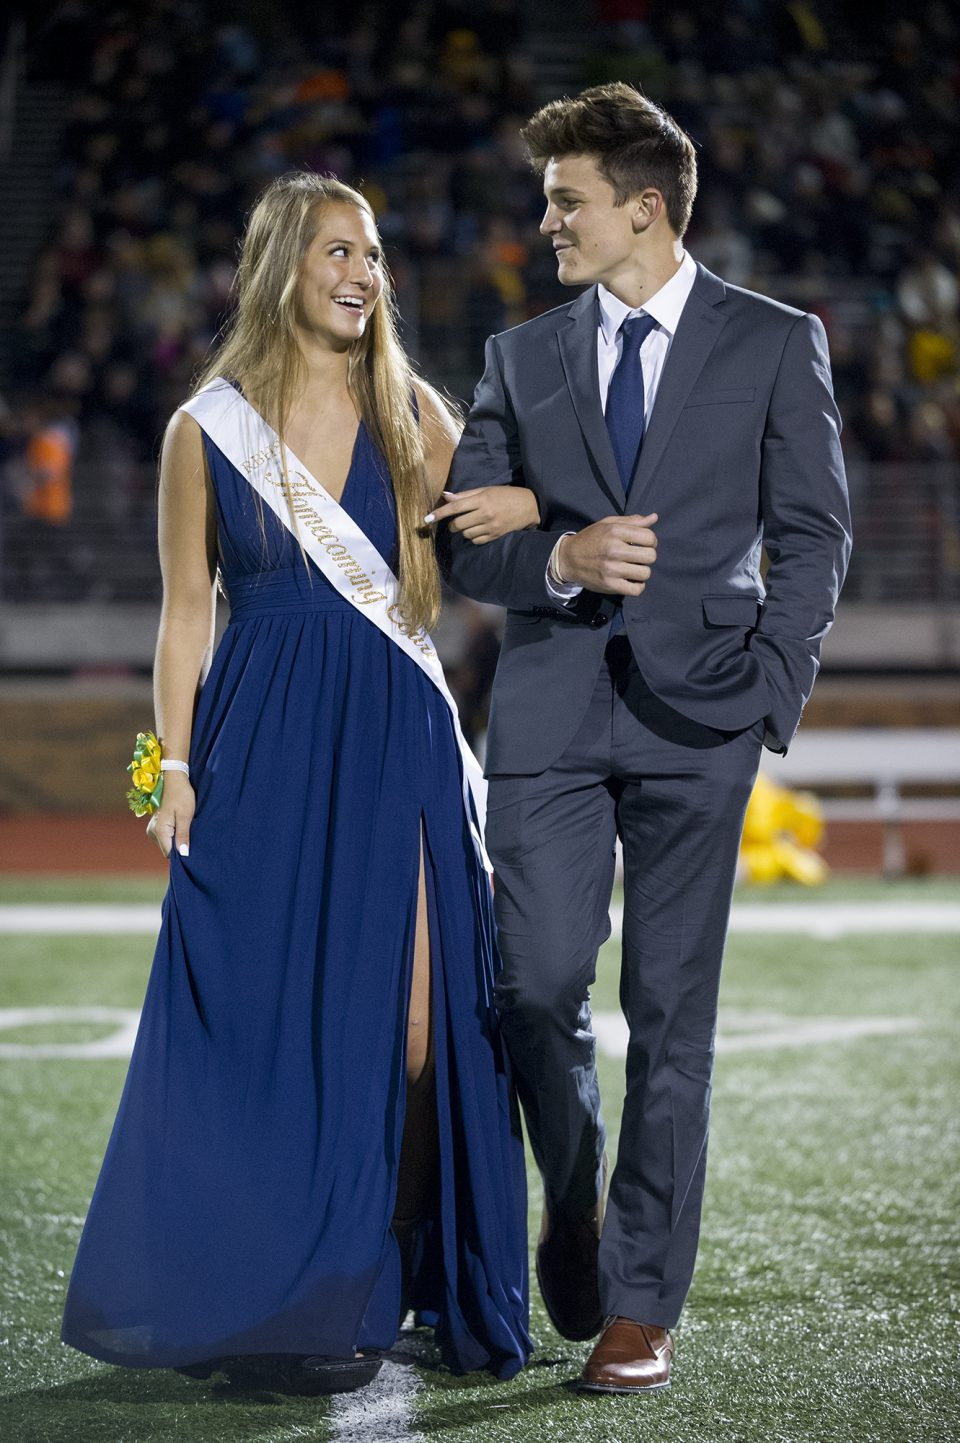 Homecoming queen candidate Adi Farris and escort Luke Bouchard. Photo by Maya Bell.